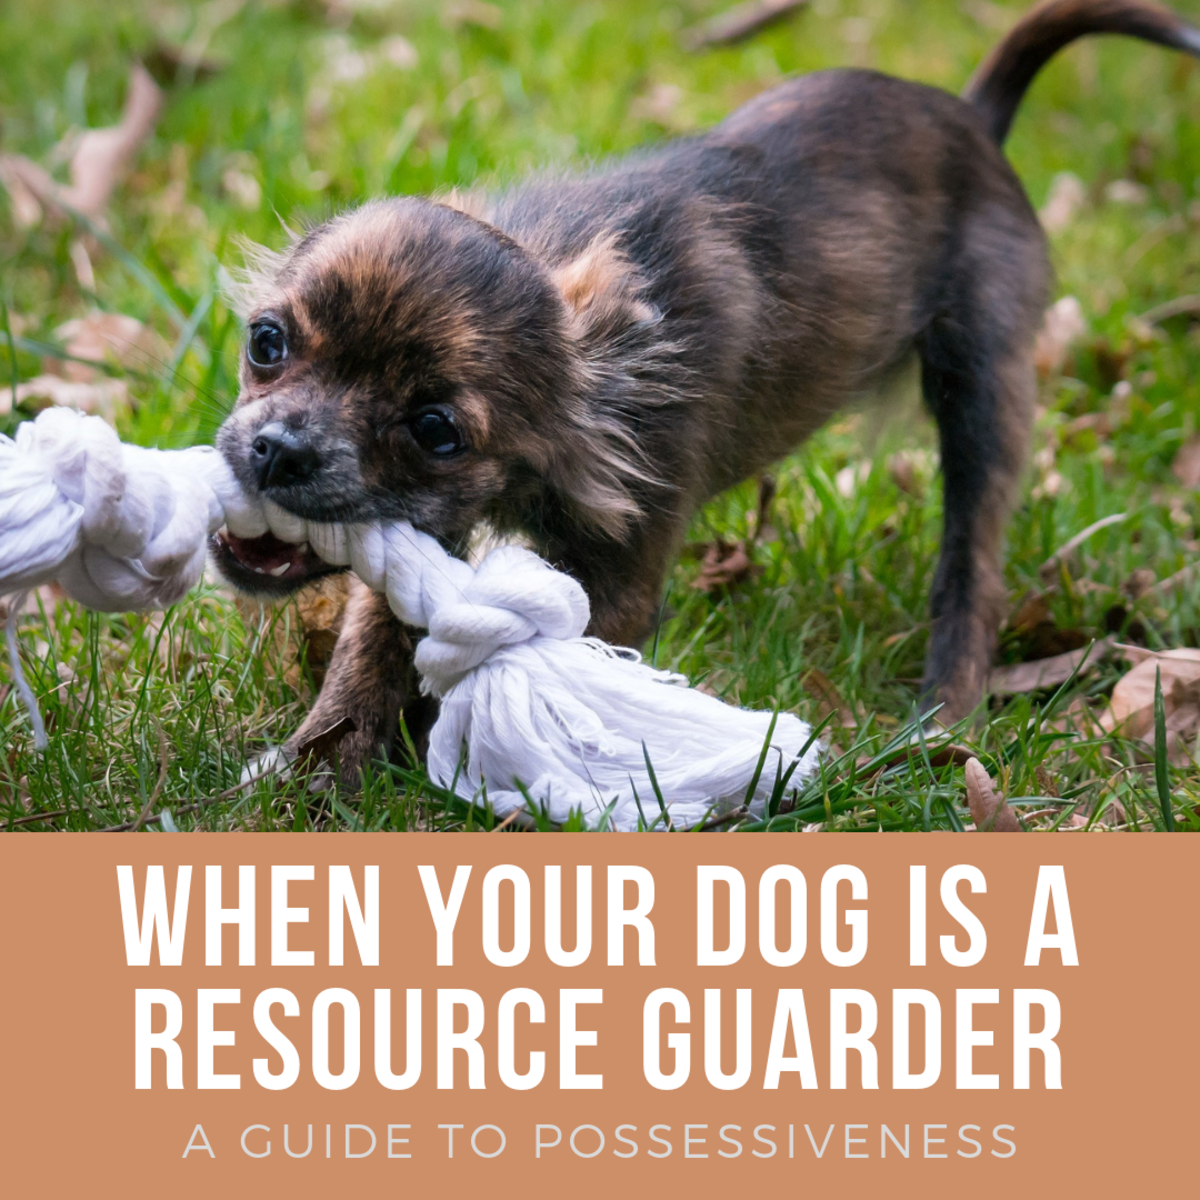 Learn what to do if your dog is possessive.